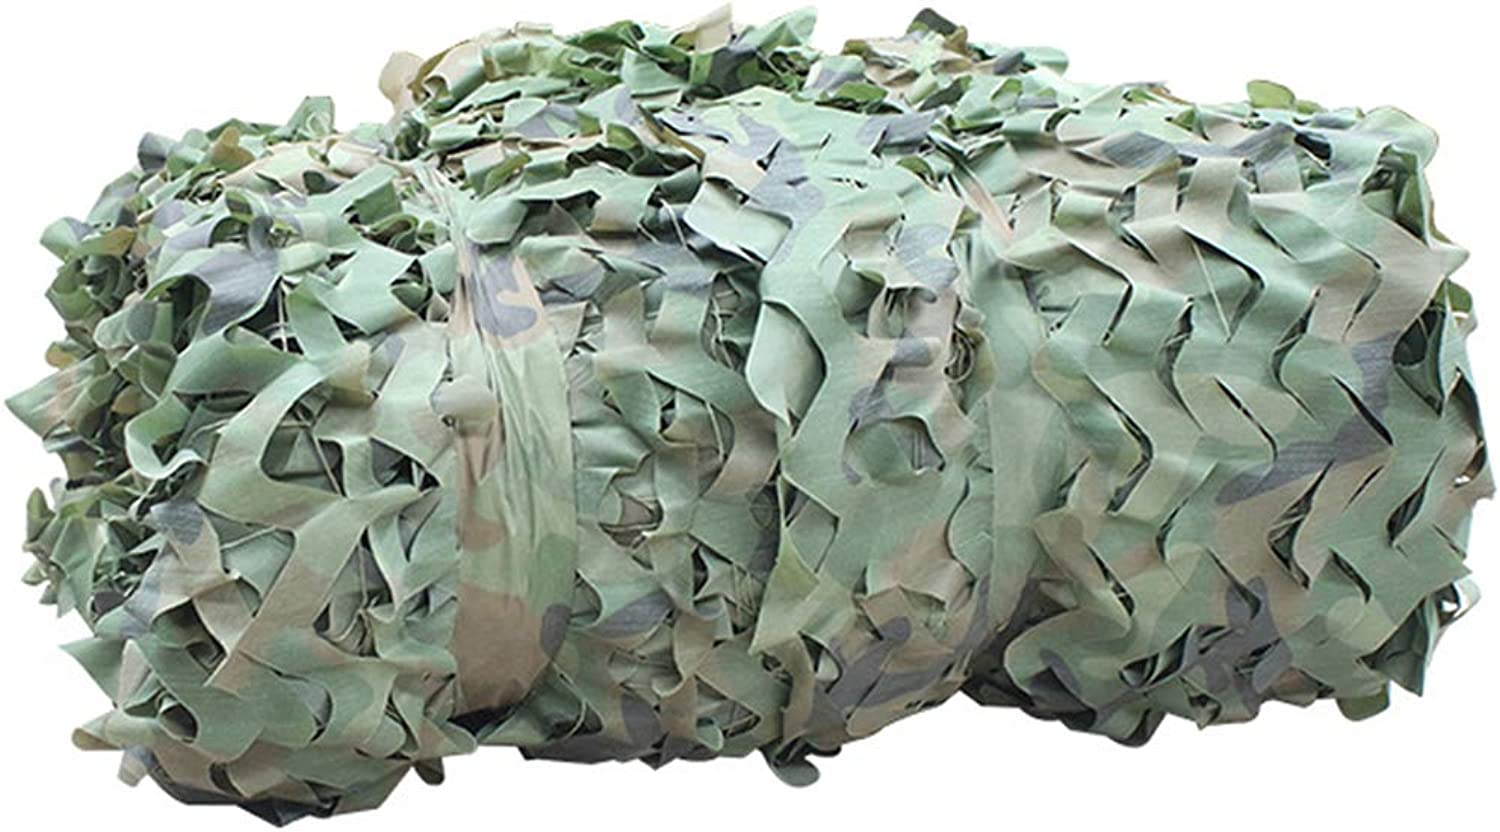 Camo Netting Woodland Hunting Camouflage Netting Lightweight Durable for Outdoor Jungle Blind Shooting Camping Photography Sunshade Net Military Theme Party Decorations